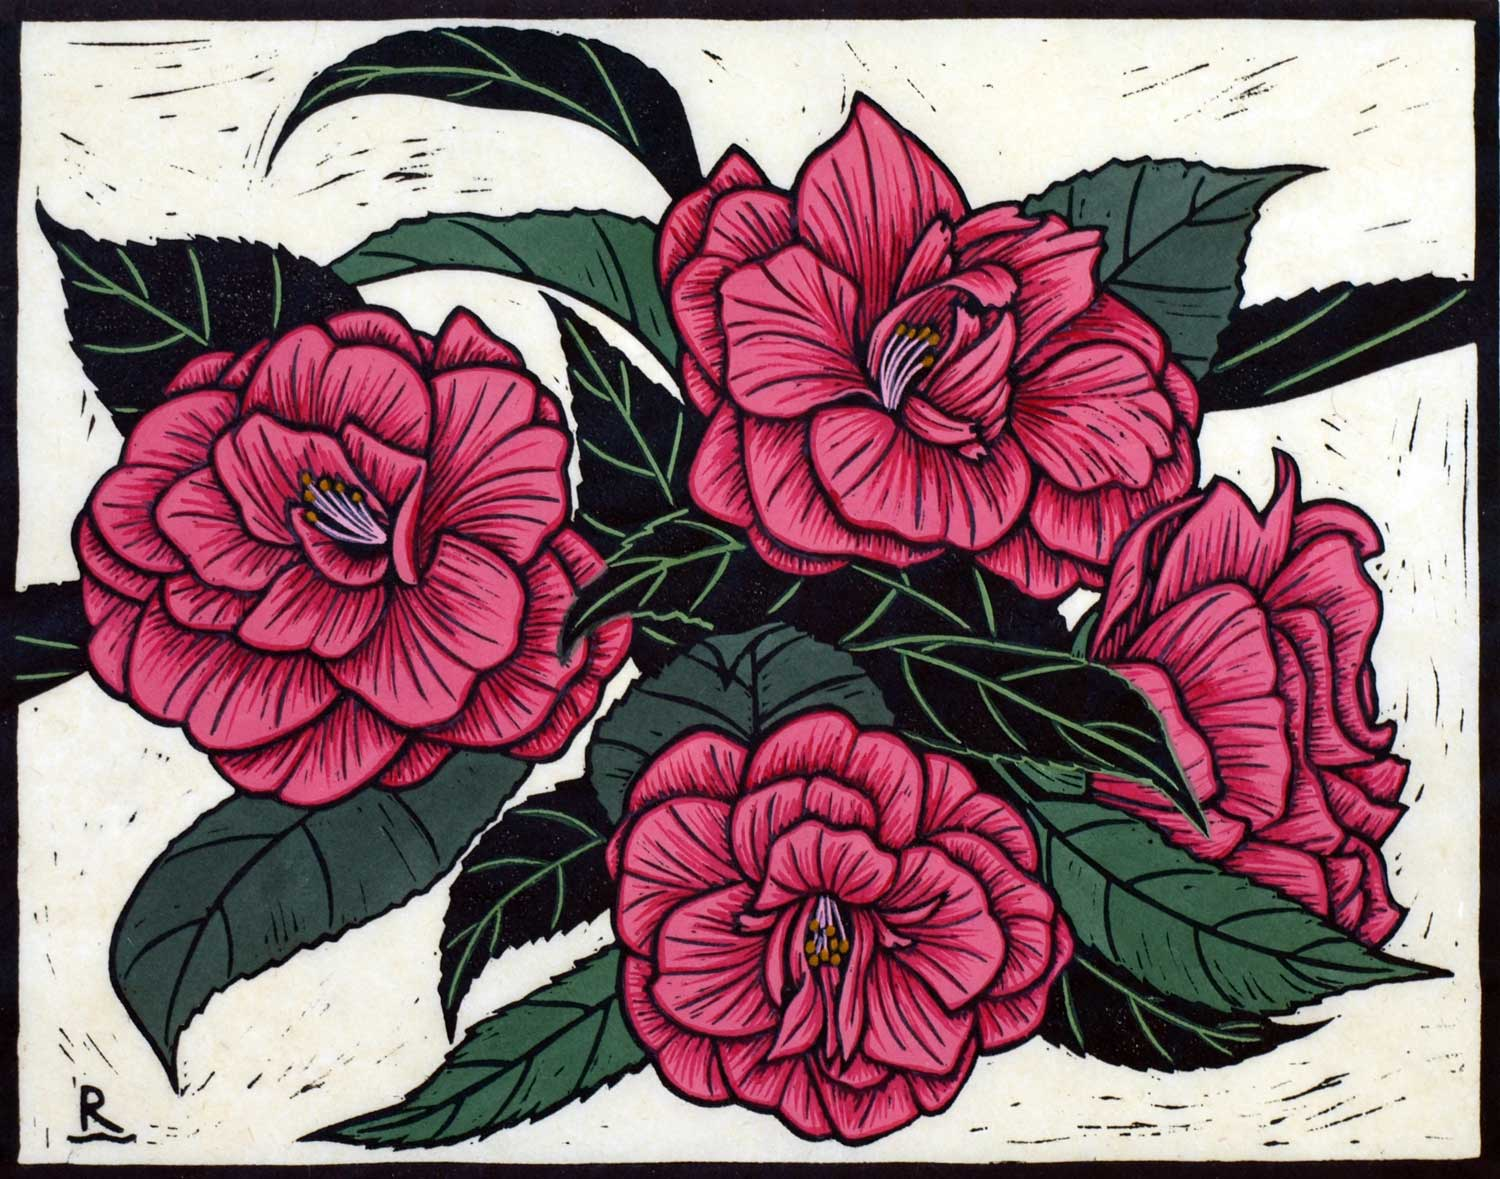 Camelia  22 x 28 cm, Edition of 50  Hand-coloured Linocut on hand made Japanese paper $650